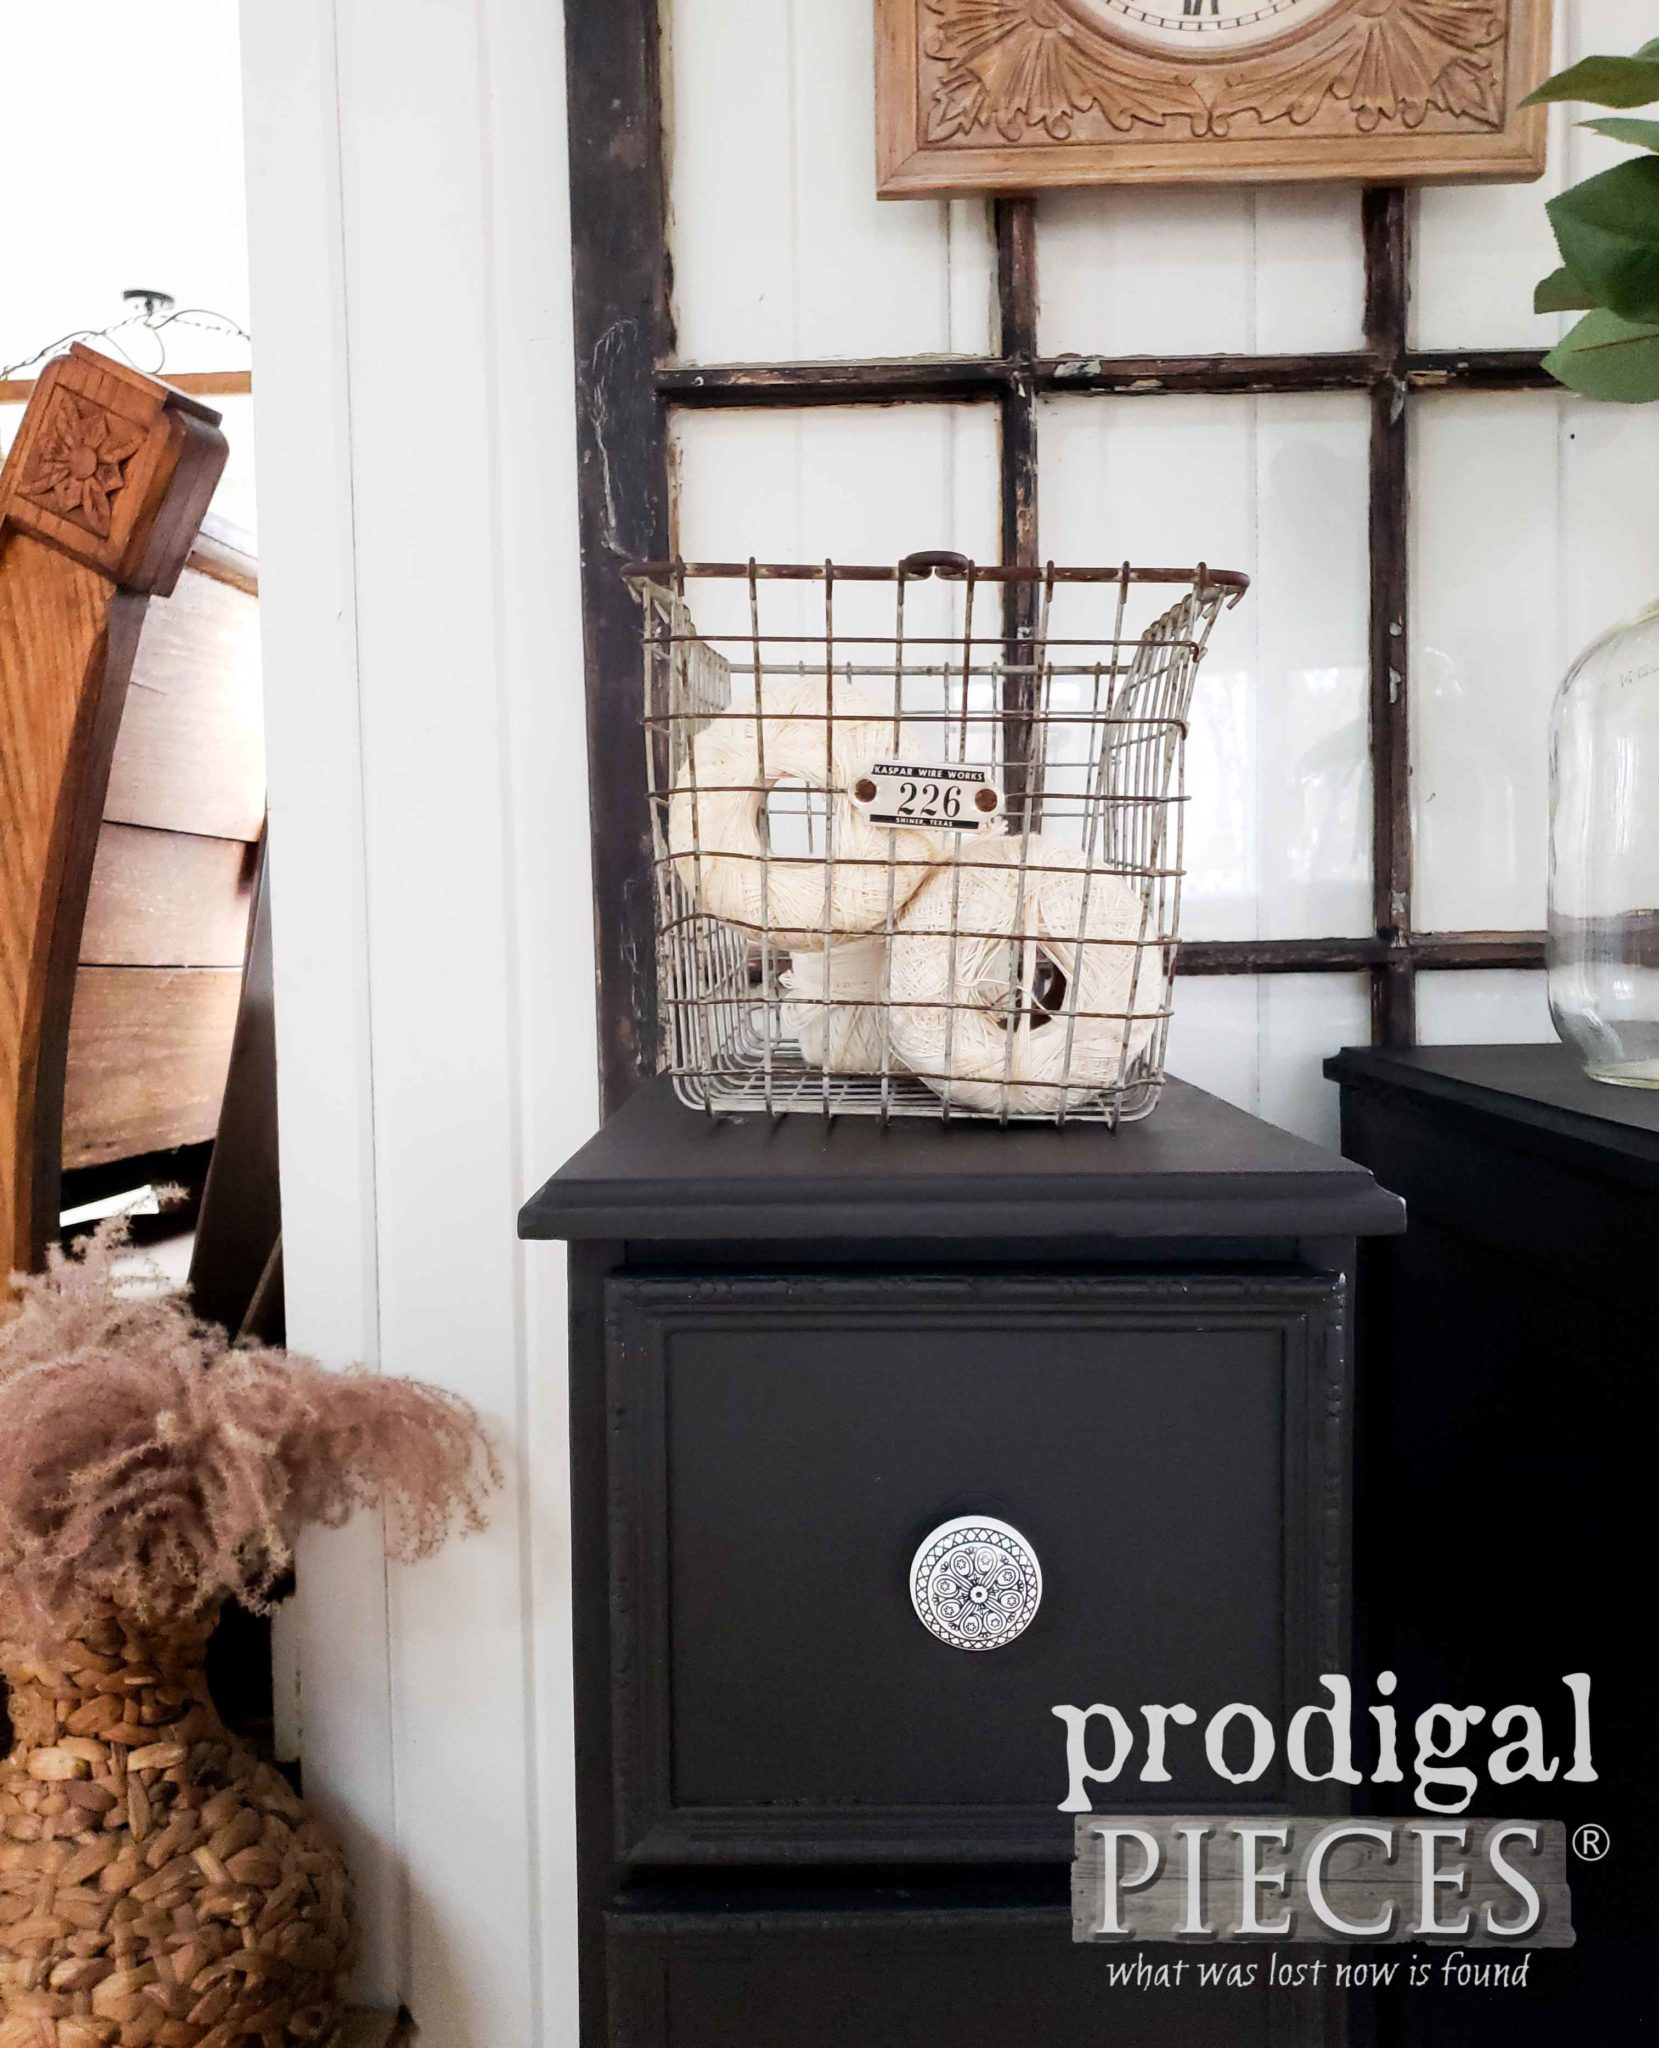 Modern Farmhouse Nightstand in Black | Made from Upcycled Desk by Larissa of Prodigal Pieces | prodigalpieces.com #prodigalpieces #diy #handmade #farmhouse #furniture #home #shopping #homedecor #homedecorideas